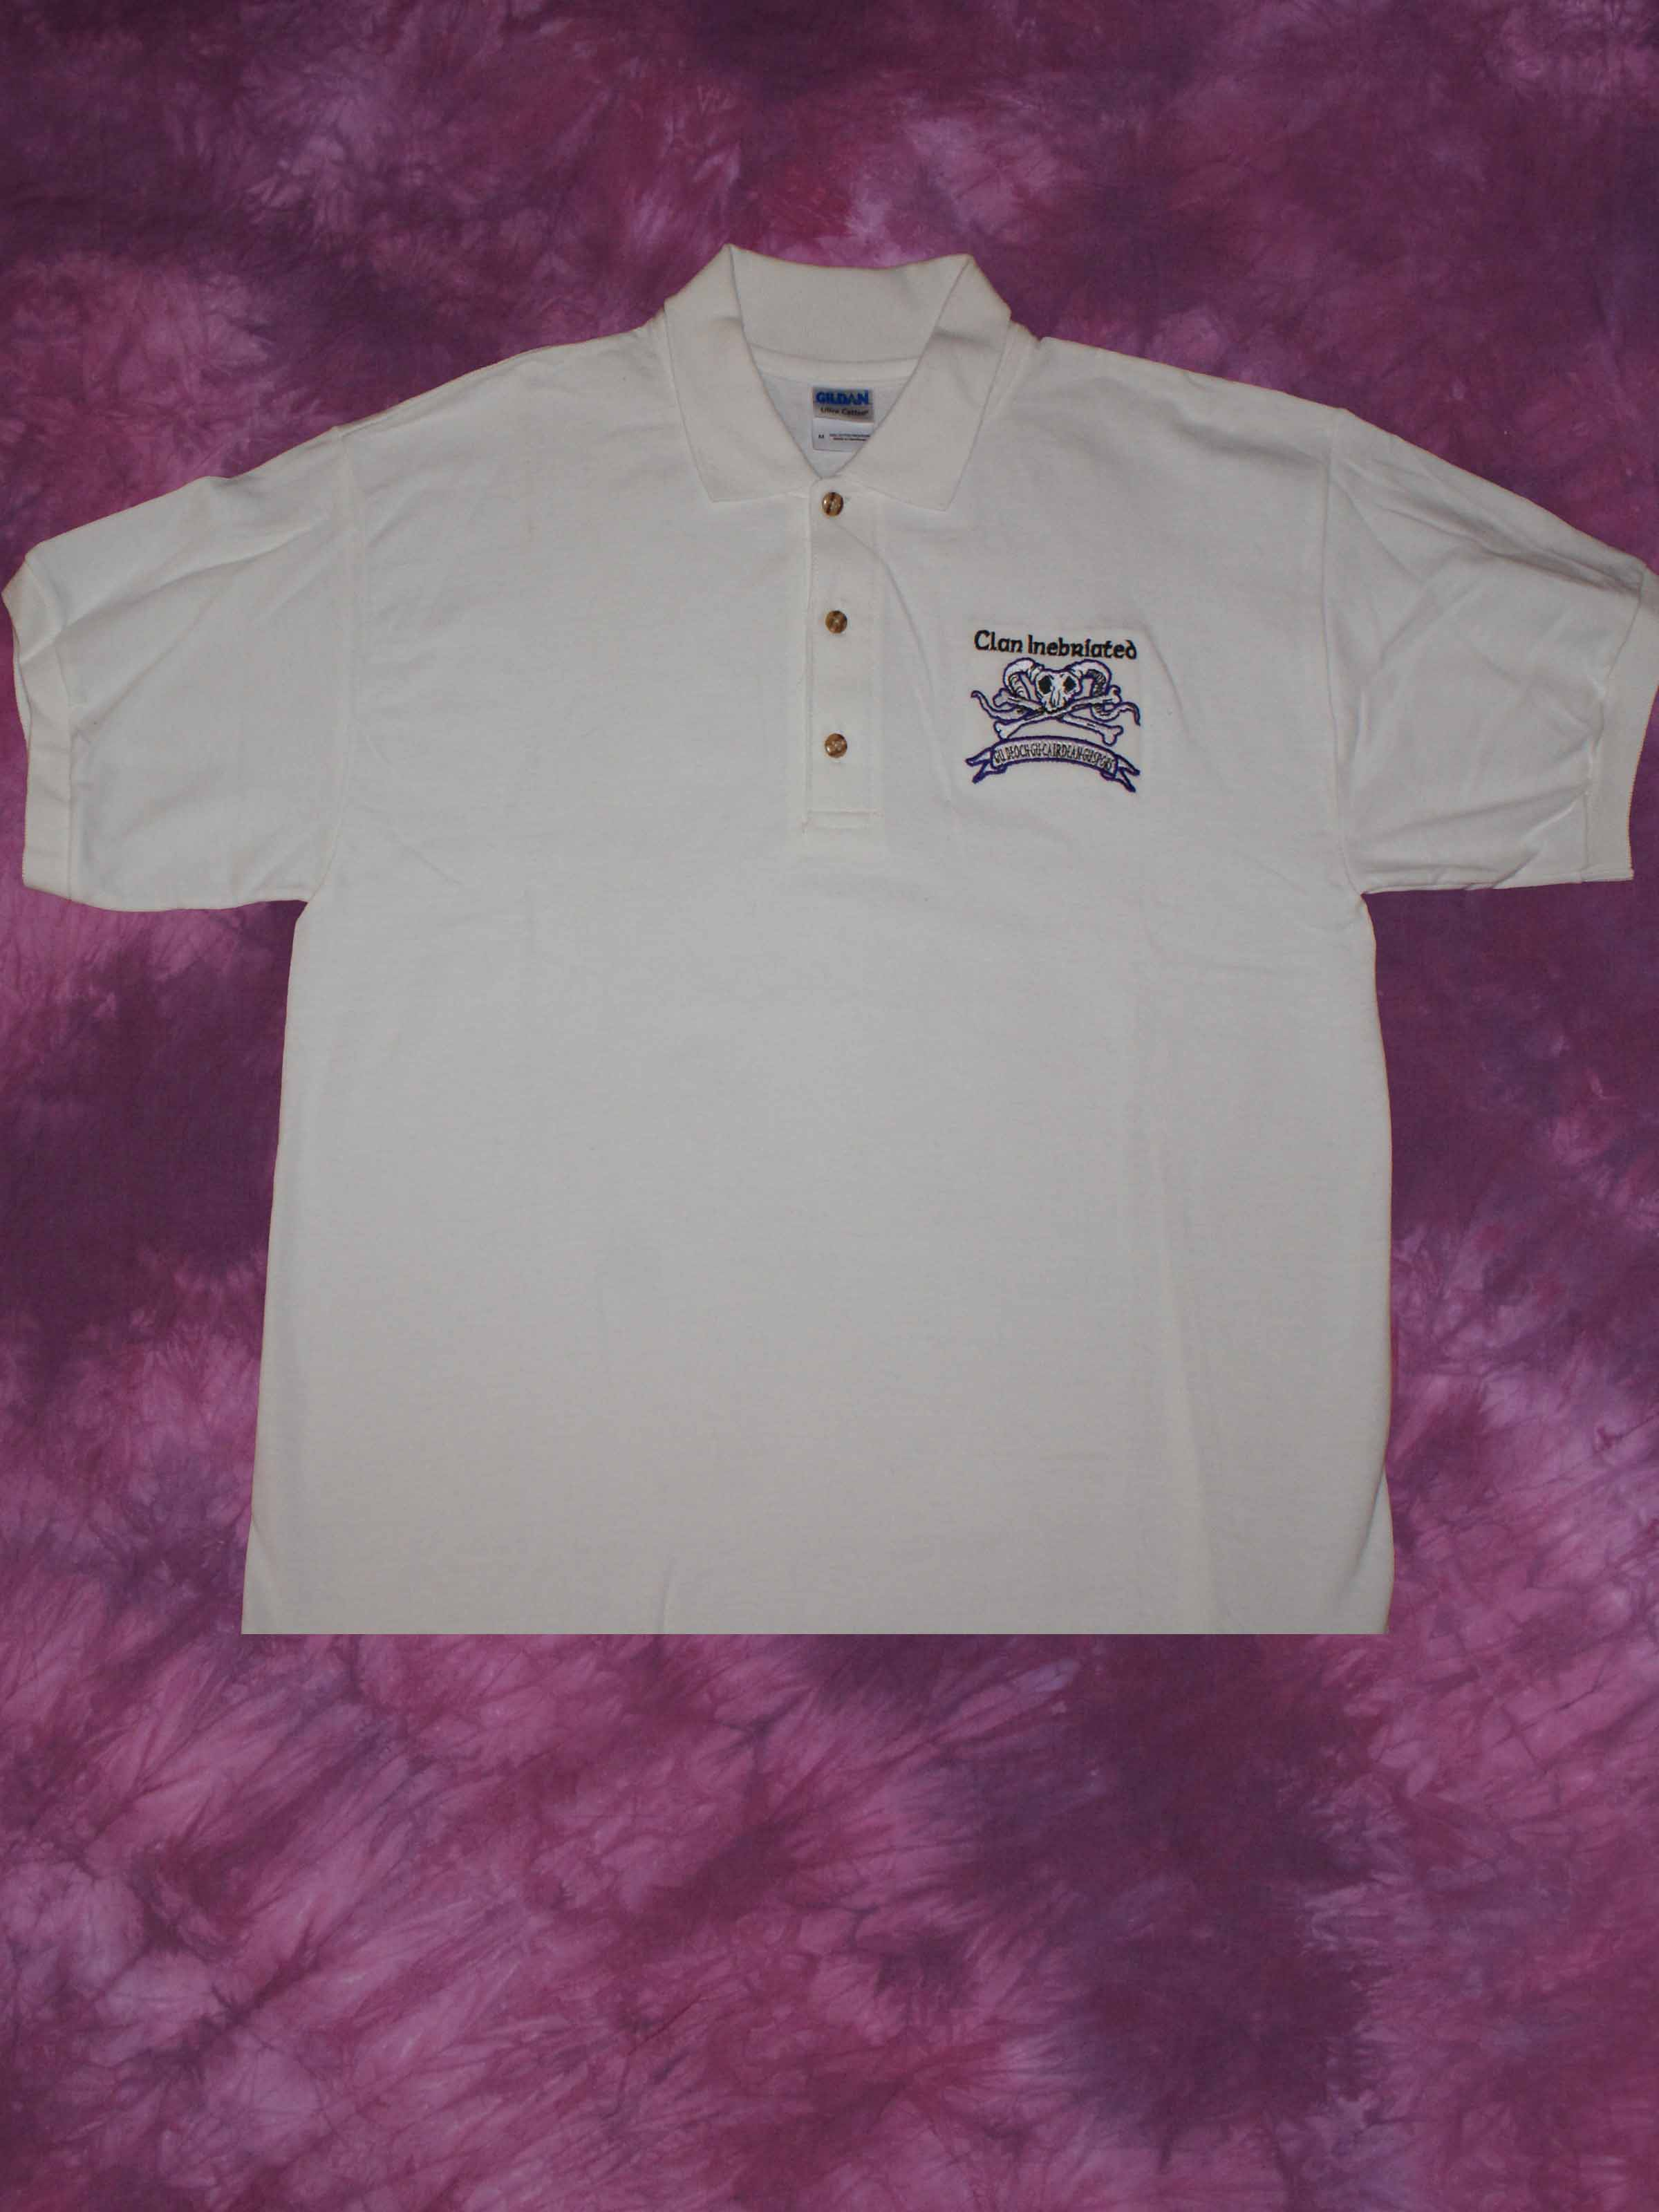 Clan Inebriated White Golf Shirt